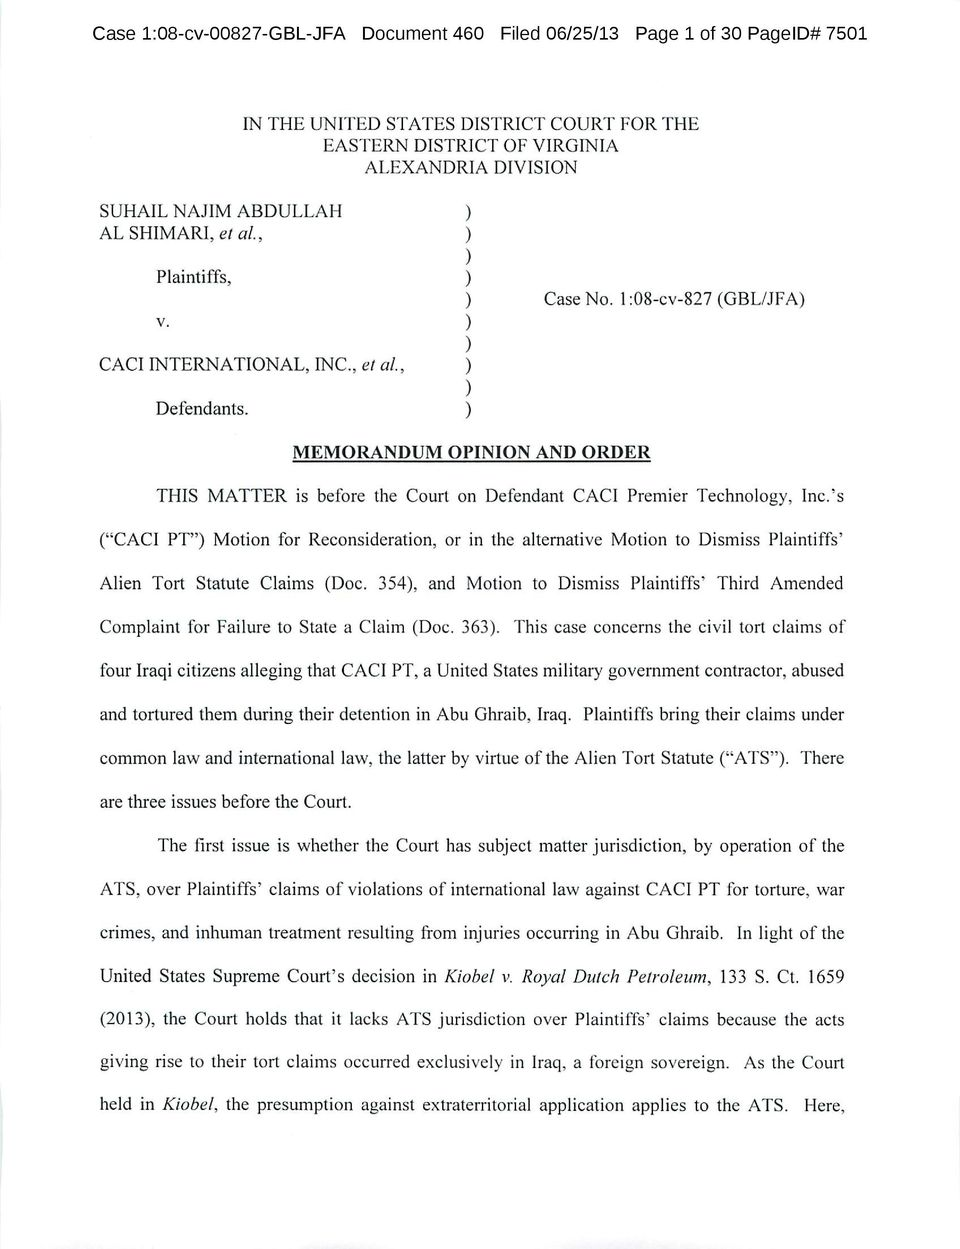 ) MEMORANDUM OPINION AND ORDER THIS MATTER is before the Court on Defendant CACI Premier Technology, Inc.